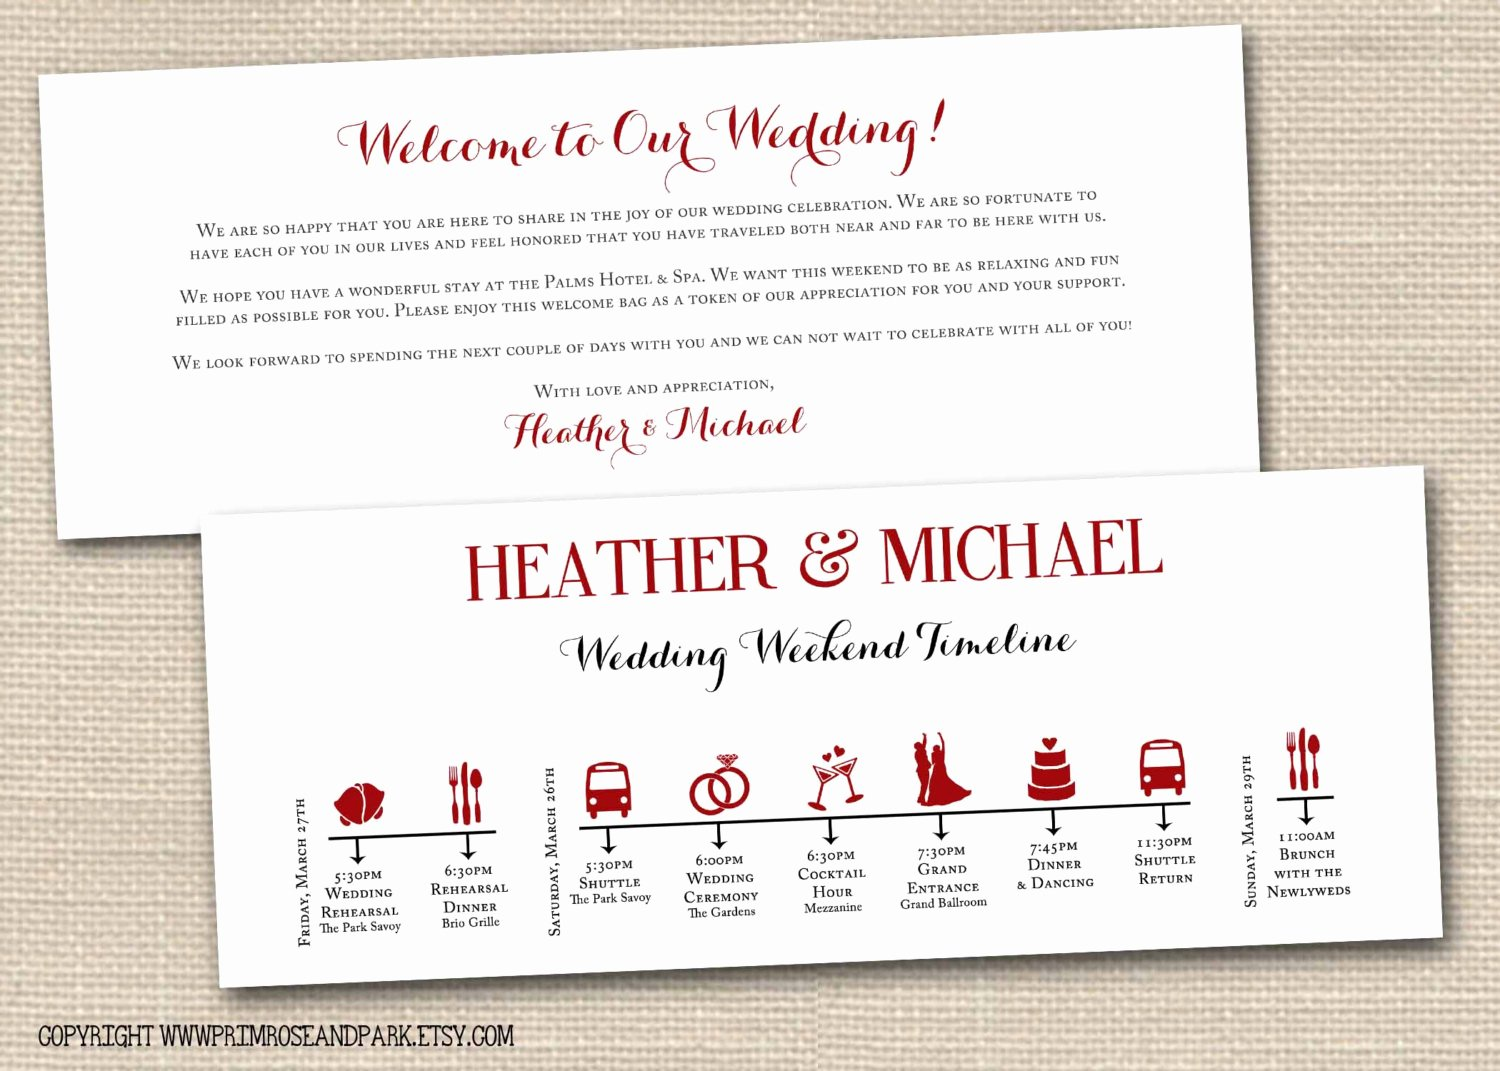 Wedding Weekend Timeline Template Best Of Wedding Weekend Timeline and Wel E Note by Primroseandpark